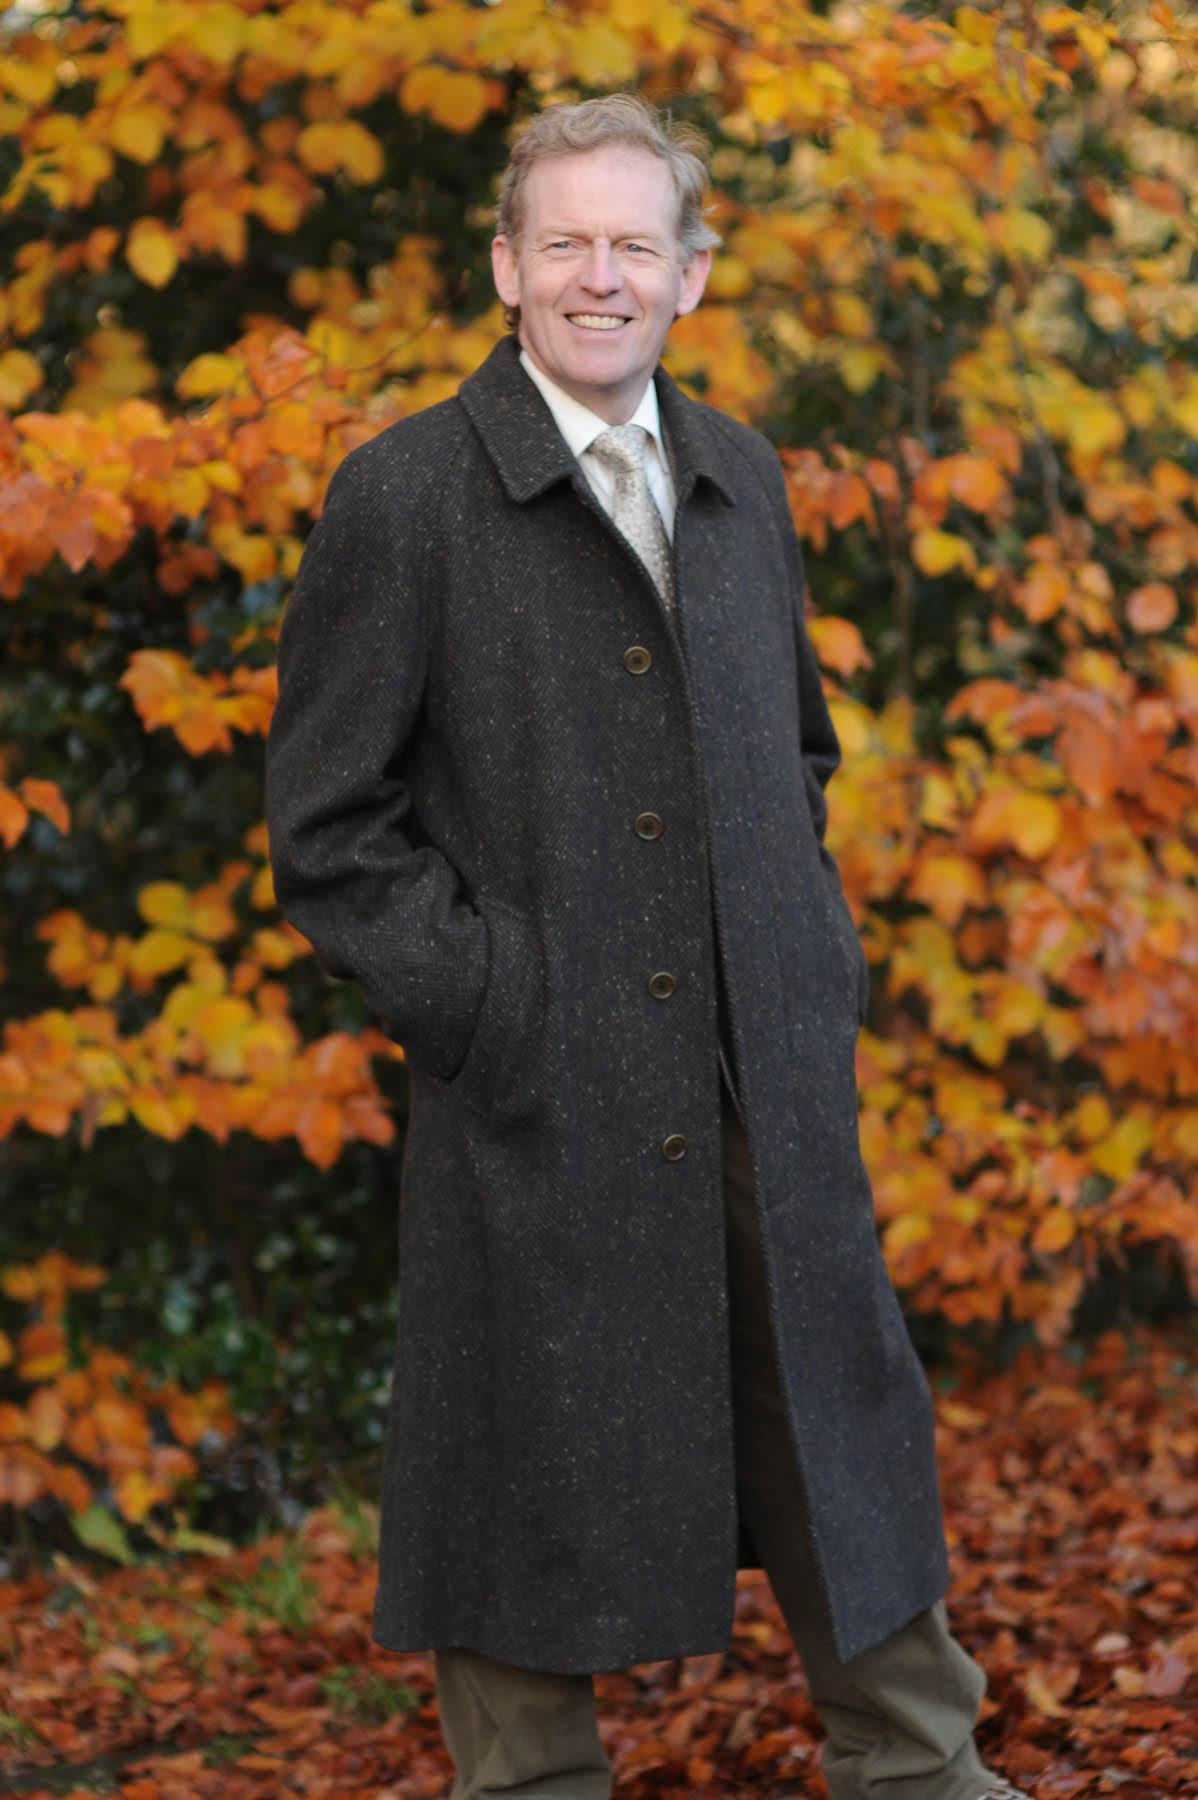 Connemara Tweed Overcoat - Irish Bracken